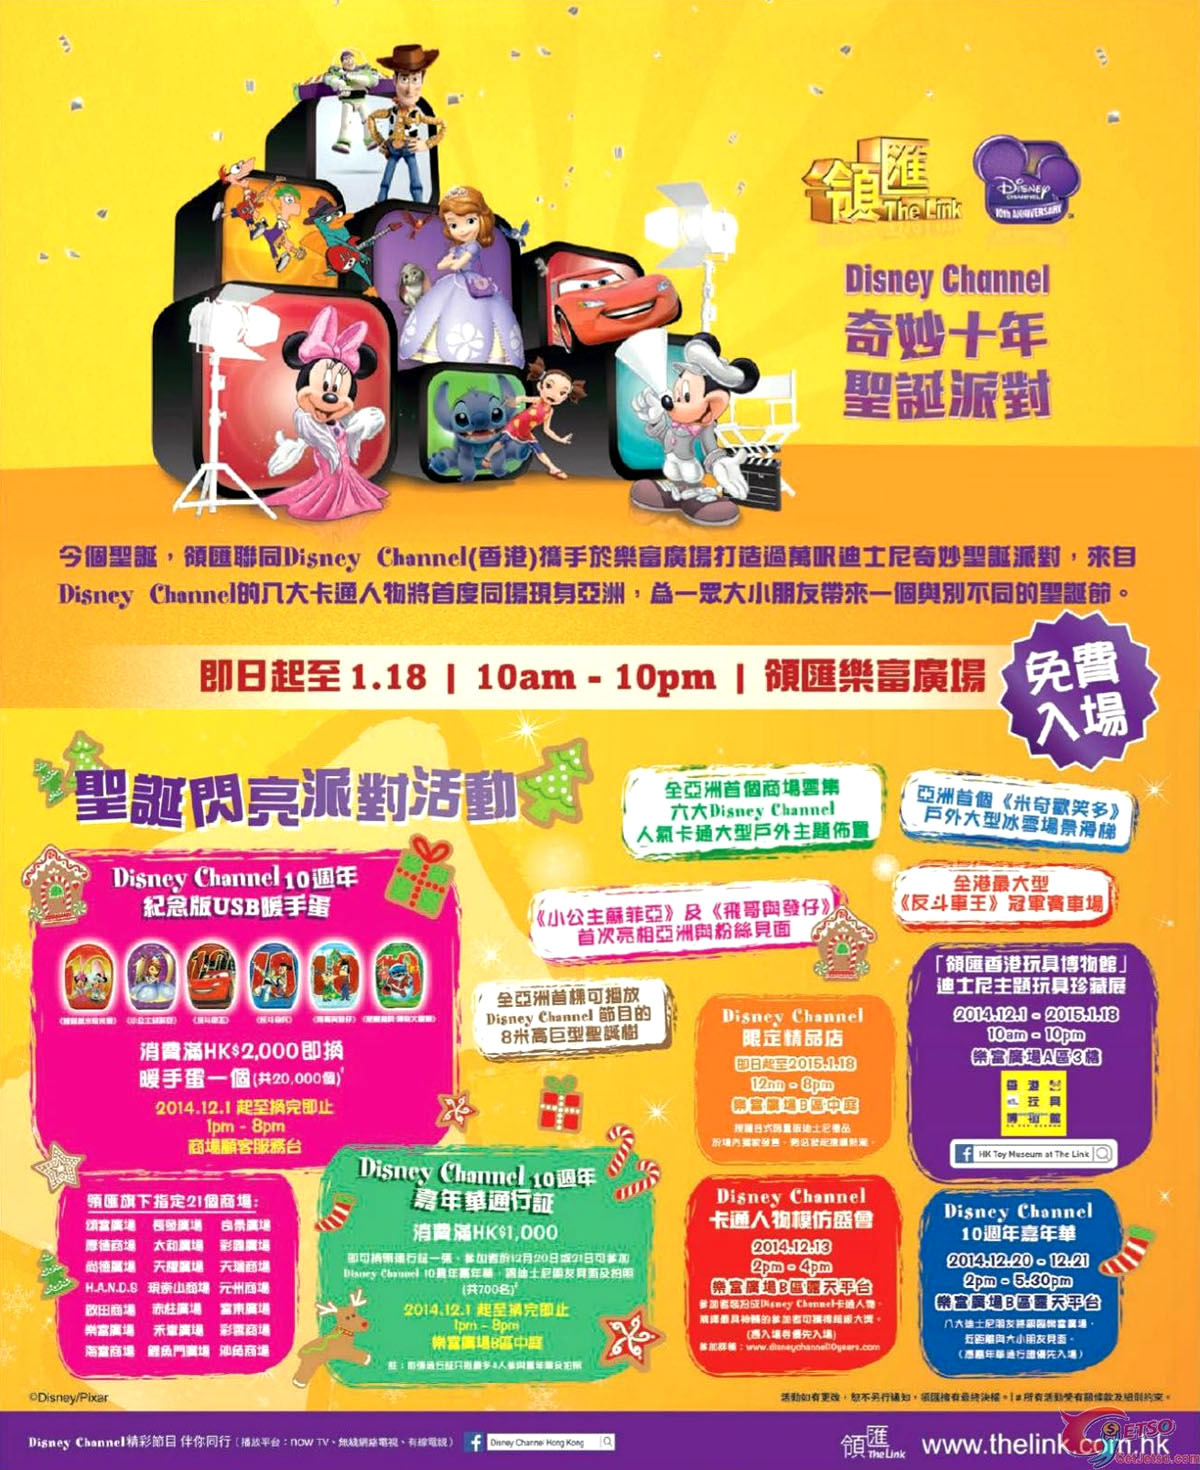 樂富廣場領匯香港迪士尼 disney channel 奇妙十年聖誕派對 lok fu the link hk disney channel christmas promotion package price